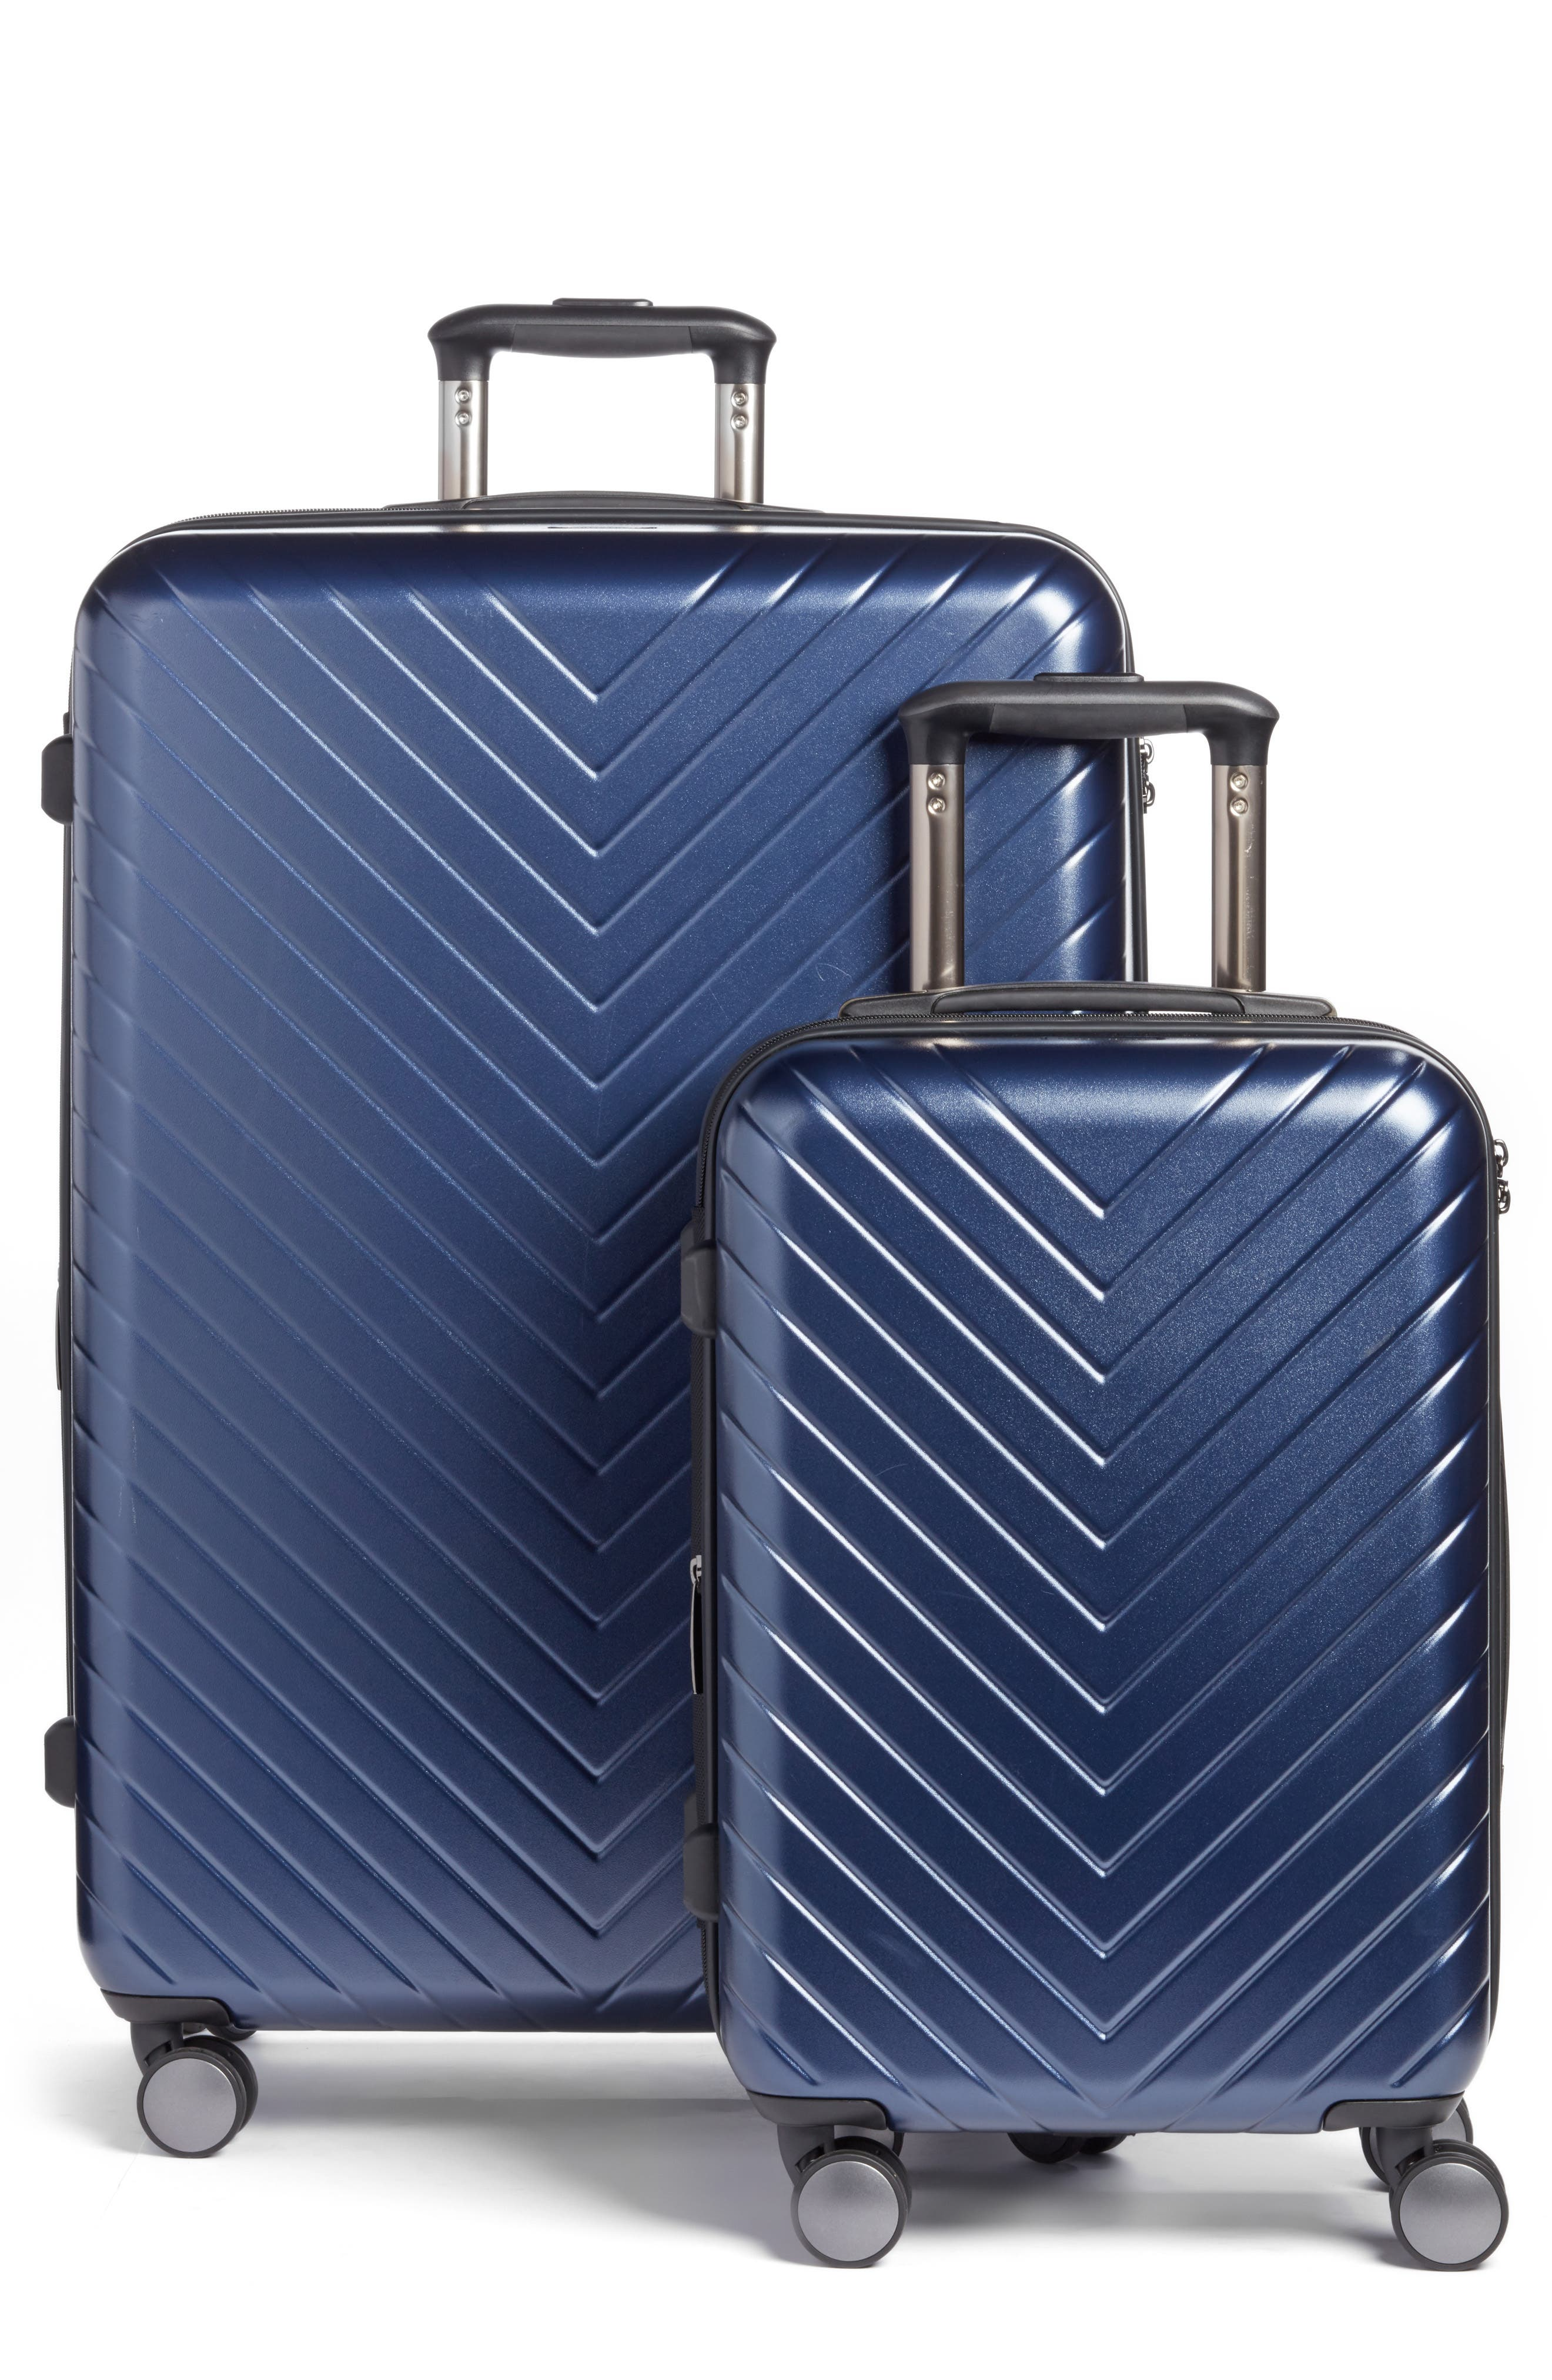 Main Image - Nordstrom Chevron 29-Inch & 20-Inch Spinner Luggage Set ($408 Value)